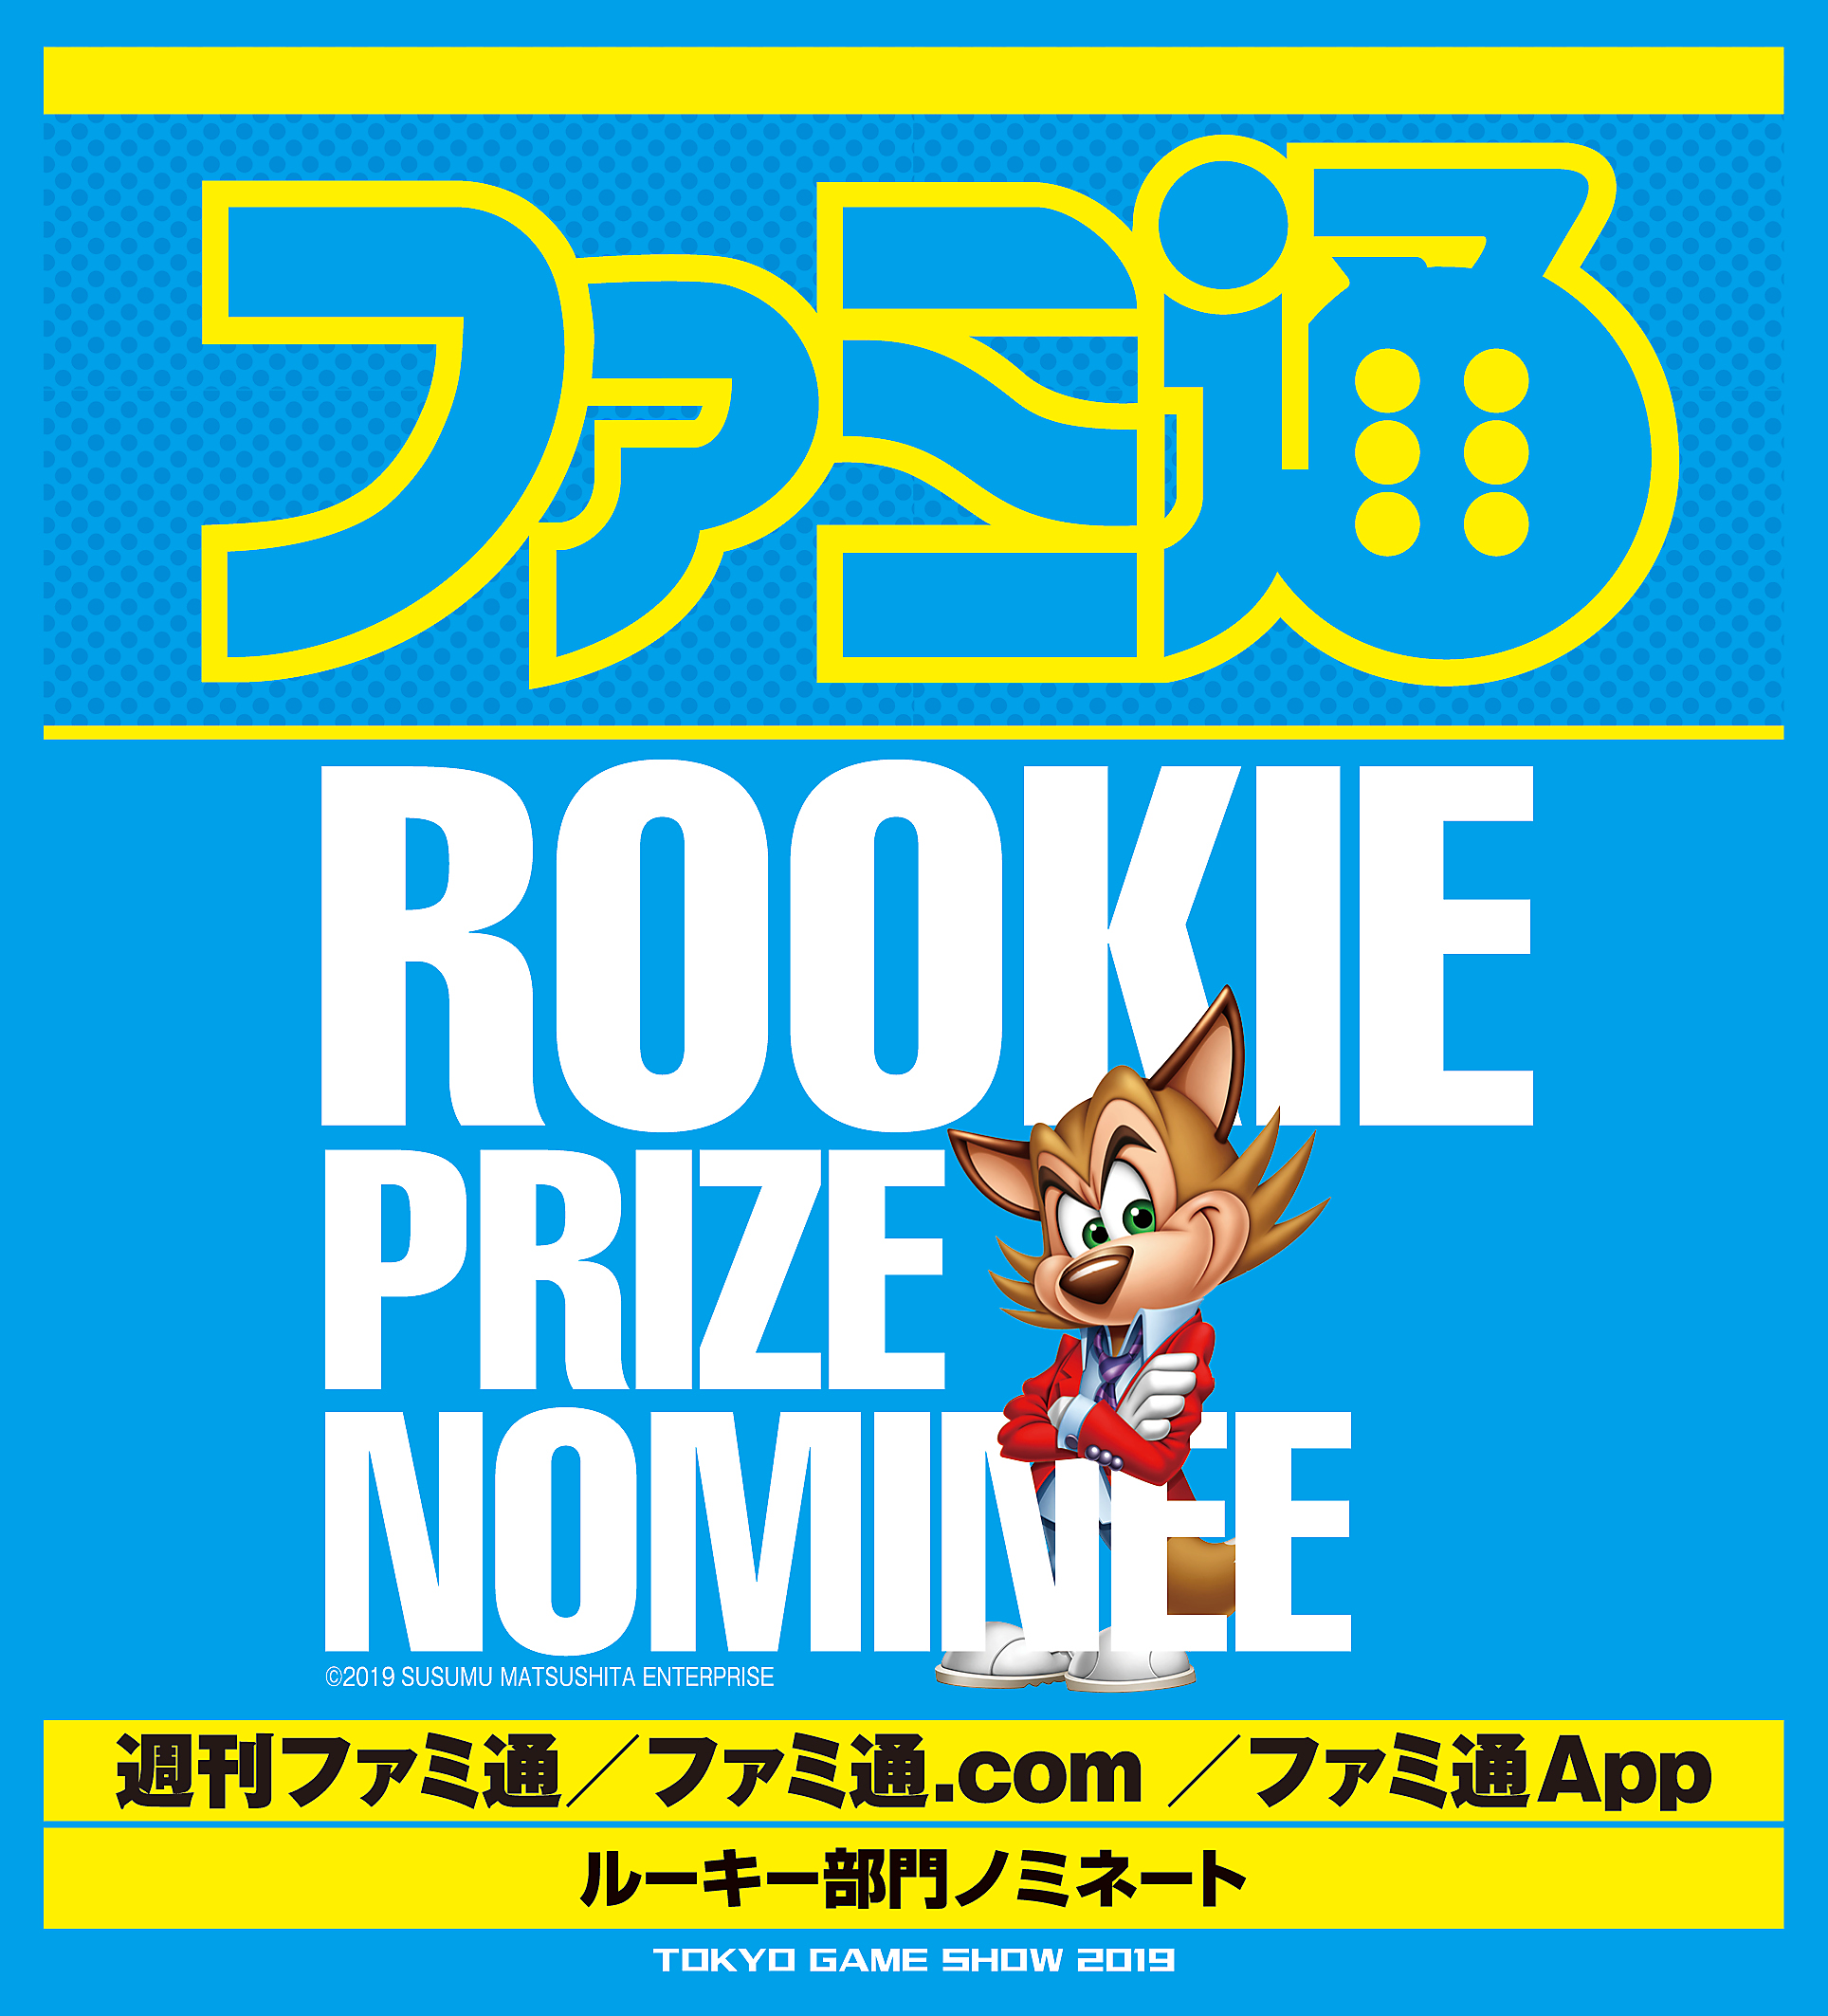 Dengeki PlayStation Rookie Prize Nominee